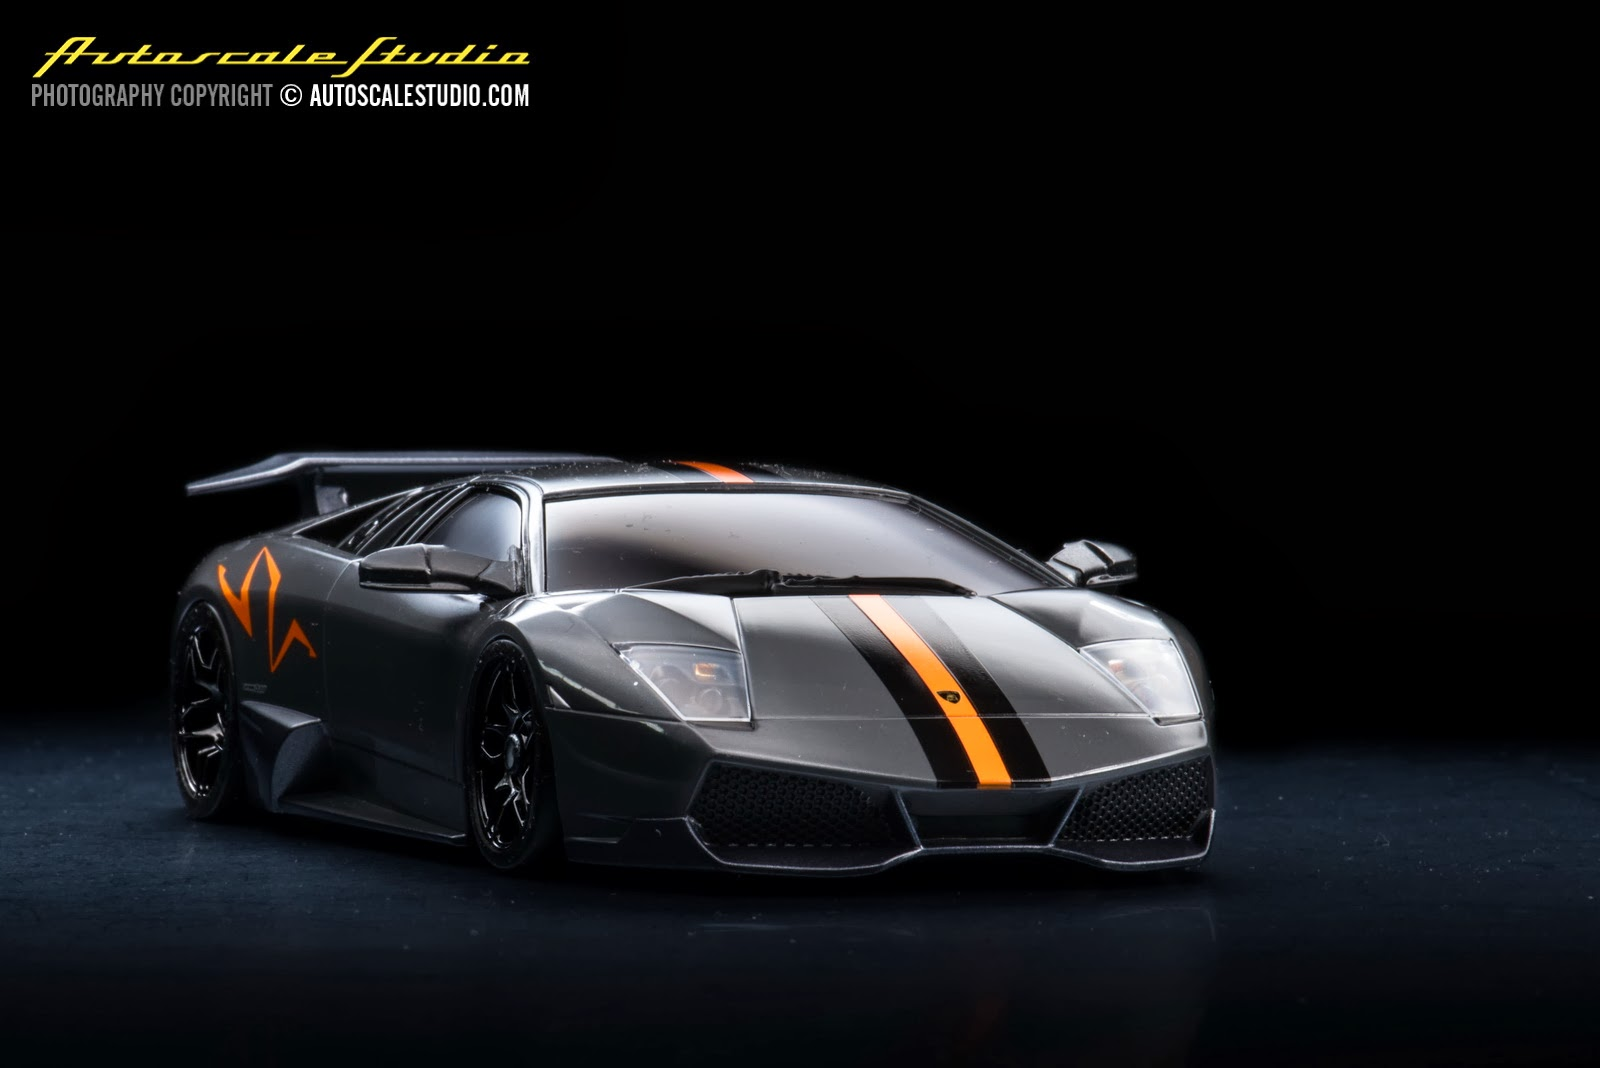 Mzp215cn Lamborghini Murcielago Lp670 4sv China Limited Edition Autoscale Studio オートスケール・スタジオ